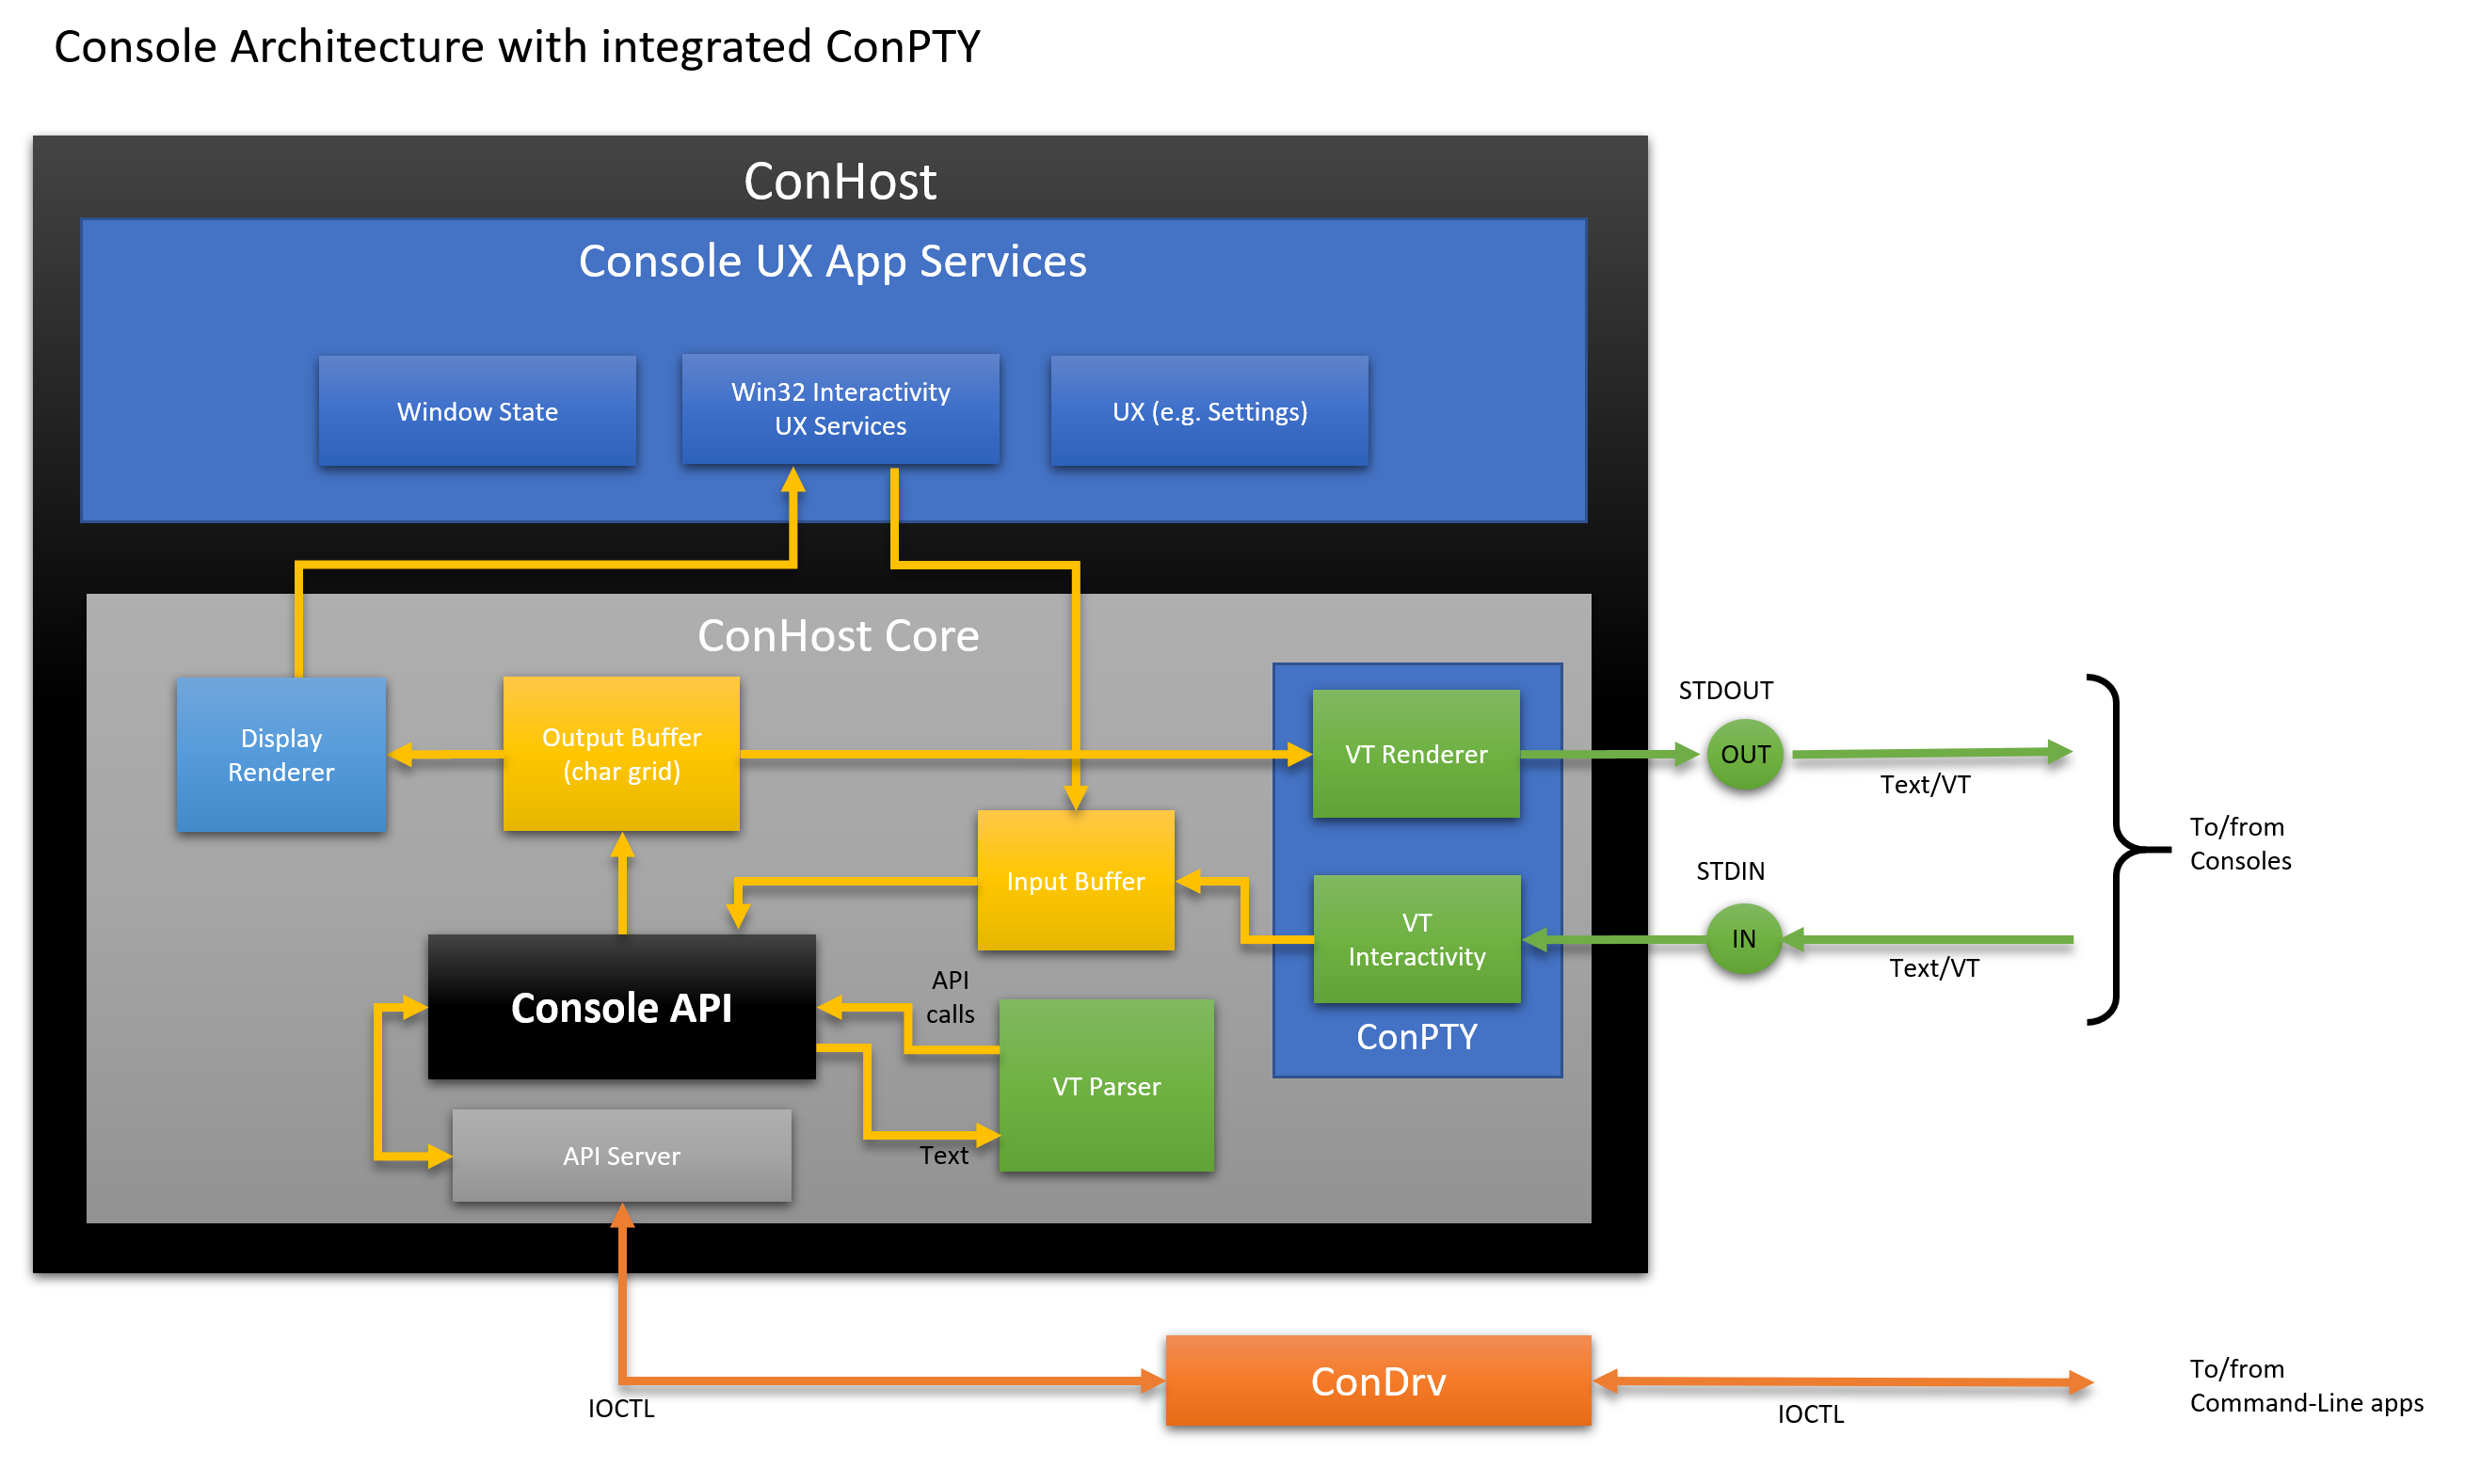 Console Architecture including the ConPTY